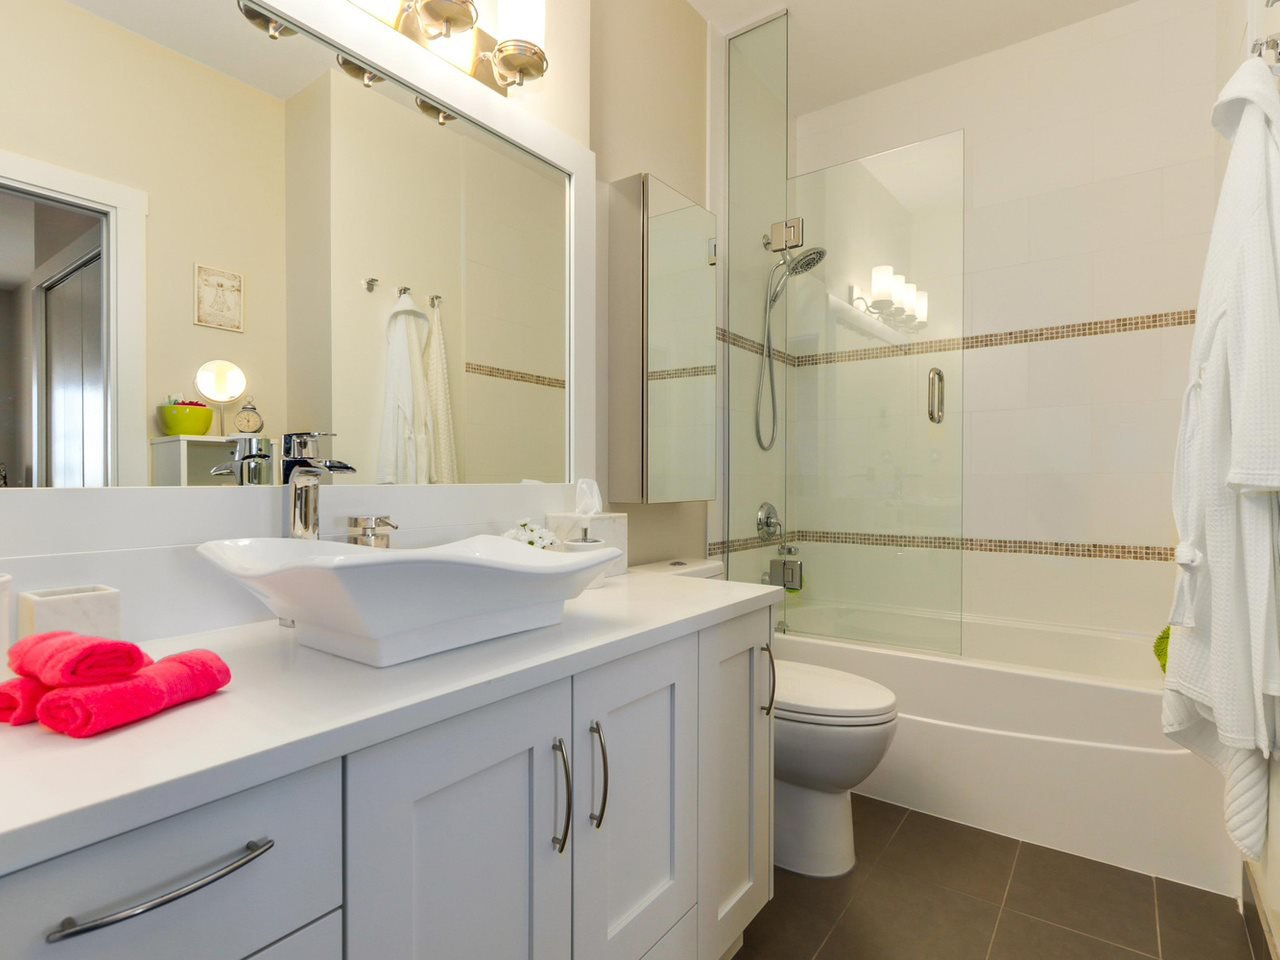 "Photo 18: Photos: 419 6233 LONDON Road in Richmond: Steveston South Condo for sale in ""LONDON STATION ONE"" : MLS®# R2133663"